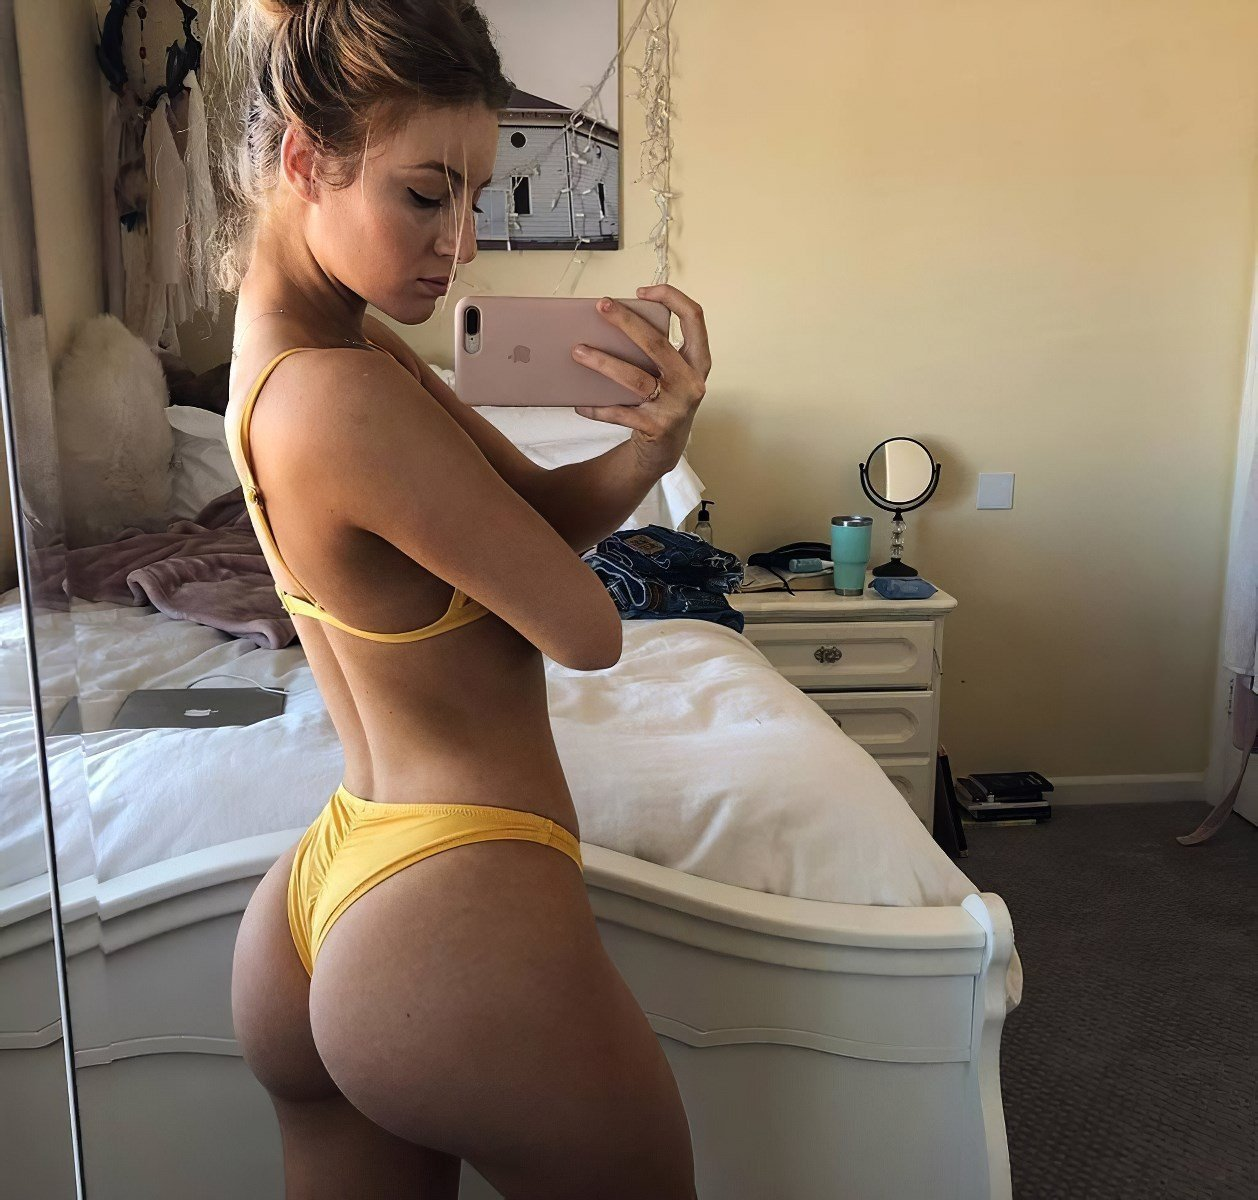 Daisy Keech Tits And Ass Compilation